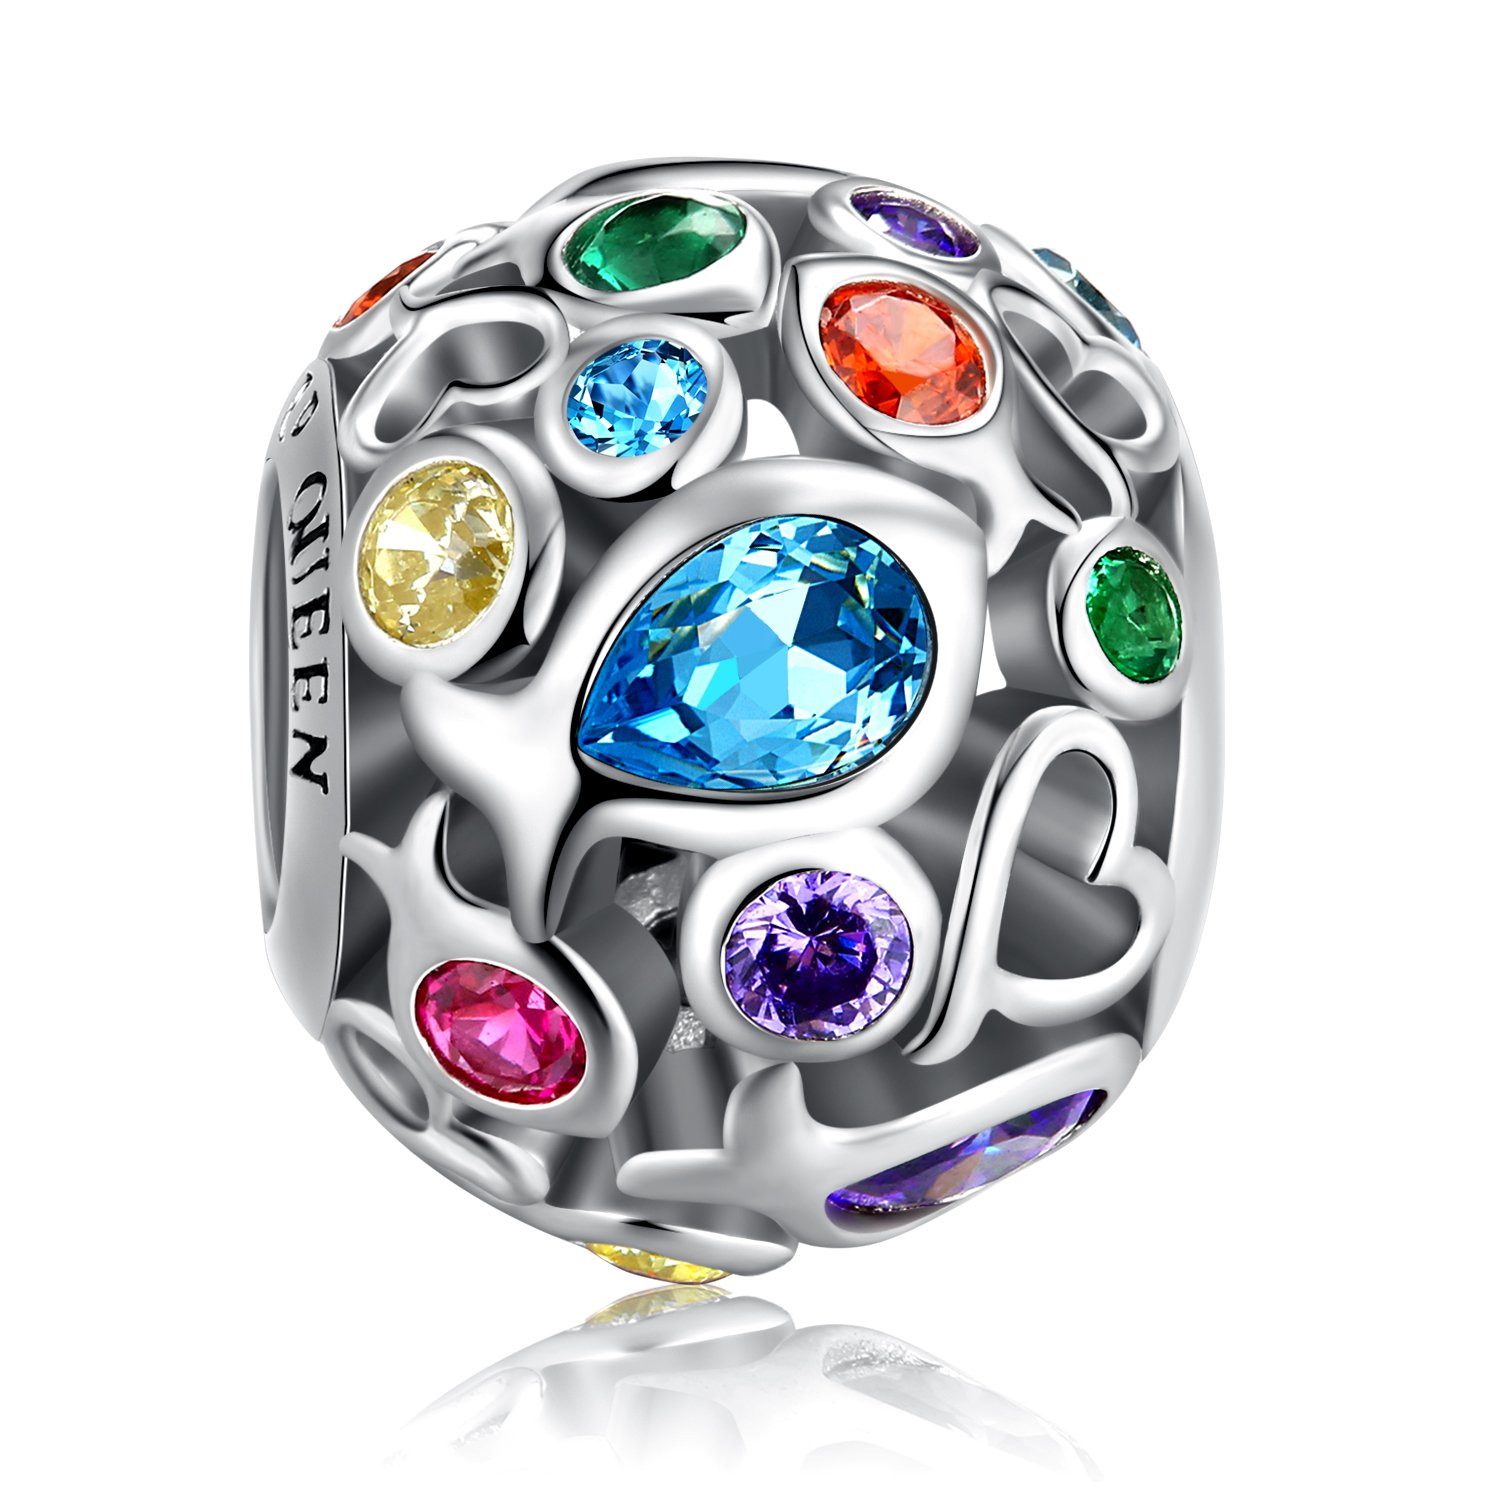 Rainbow Charm for Pandora Charms Bracelet, 925 Sterling Silver Openwork Beads Colorful Bead Charm with Skin-Friendly Fish Cubic Zircon Stone Perfect for Bracelet Necklace FQ0001 (Rainbow Charm) by FOREVER QUEEN